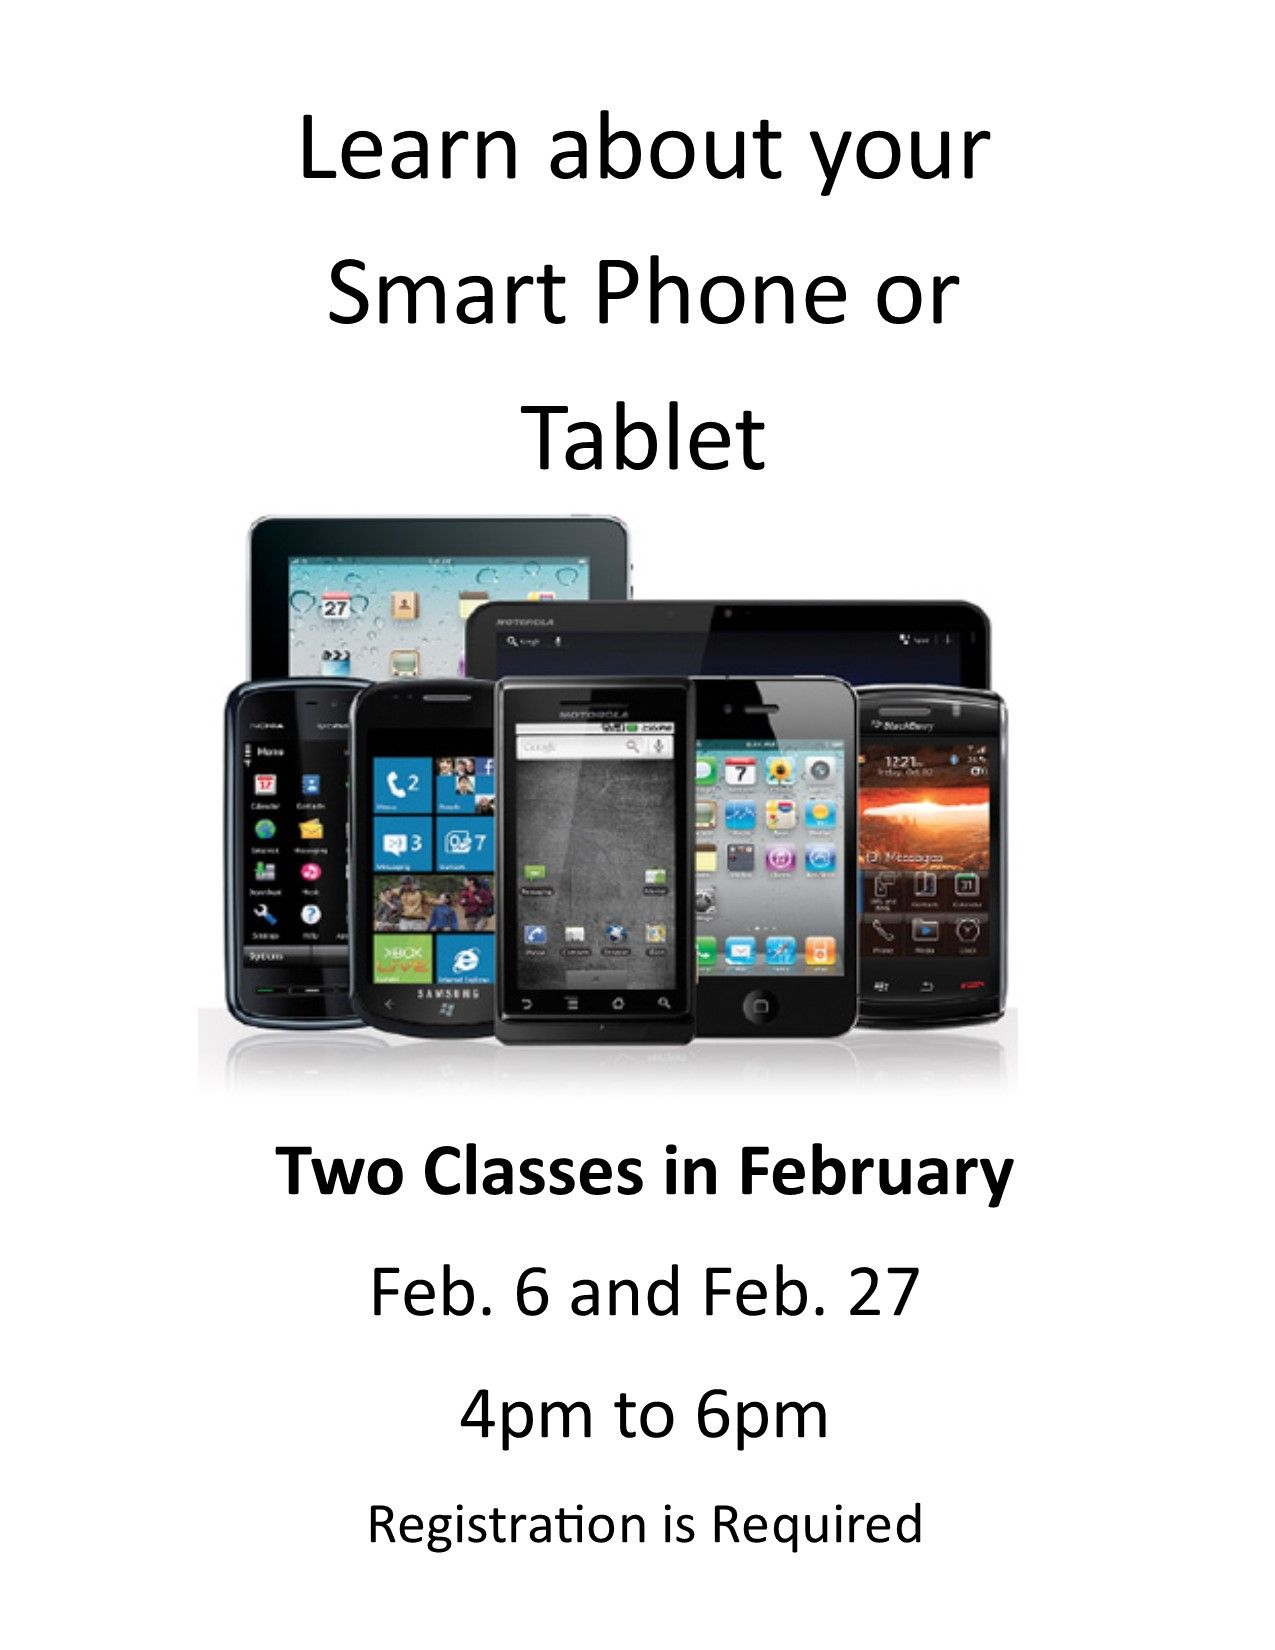 The Lepper Library is offering two Smart Device classes in